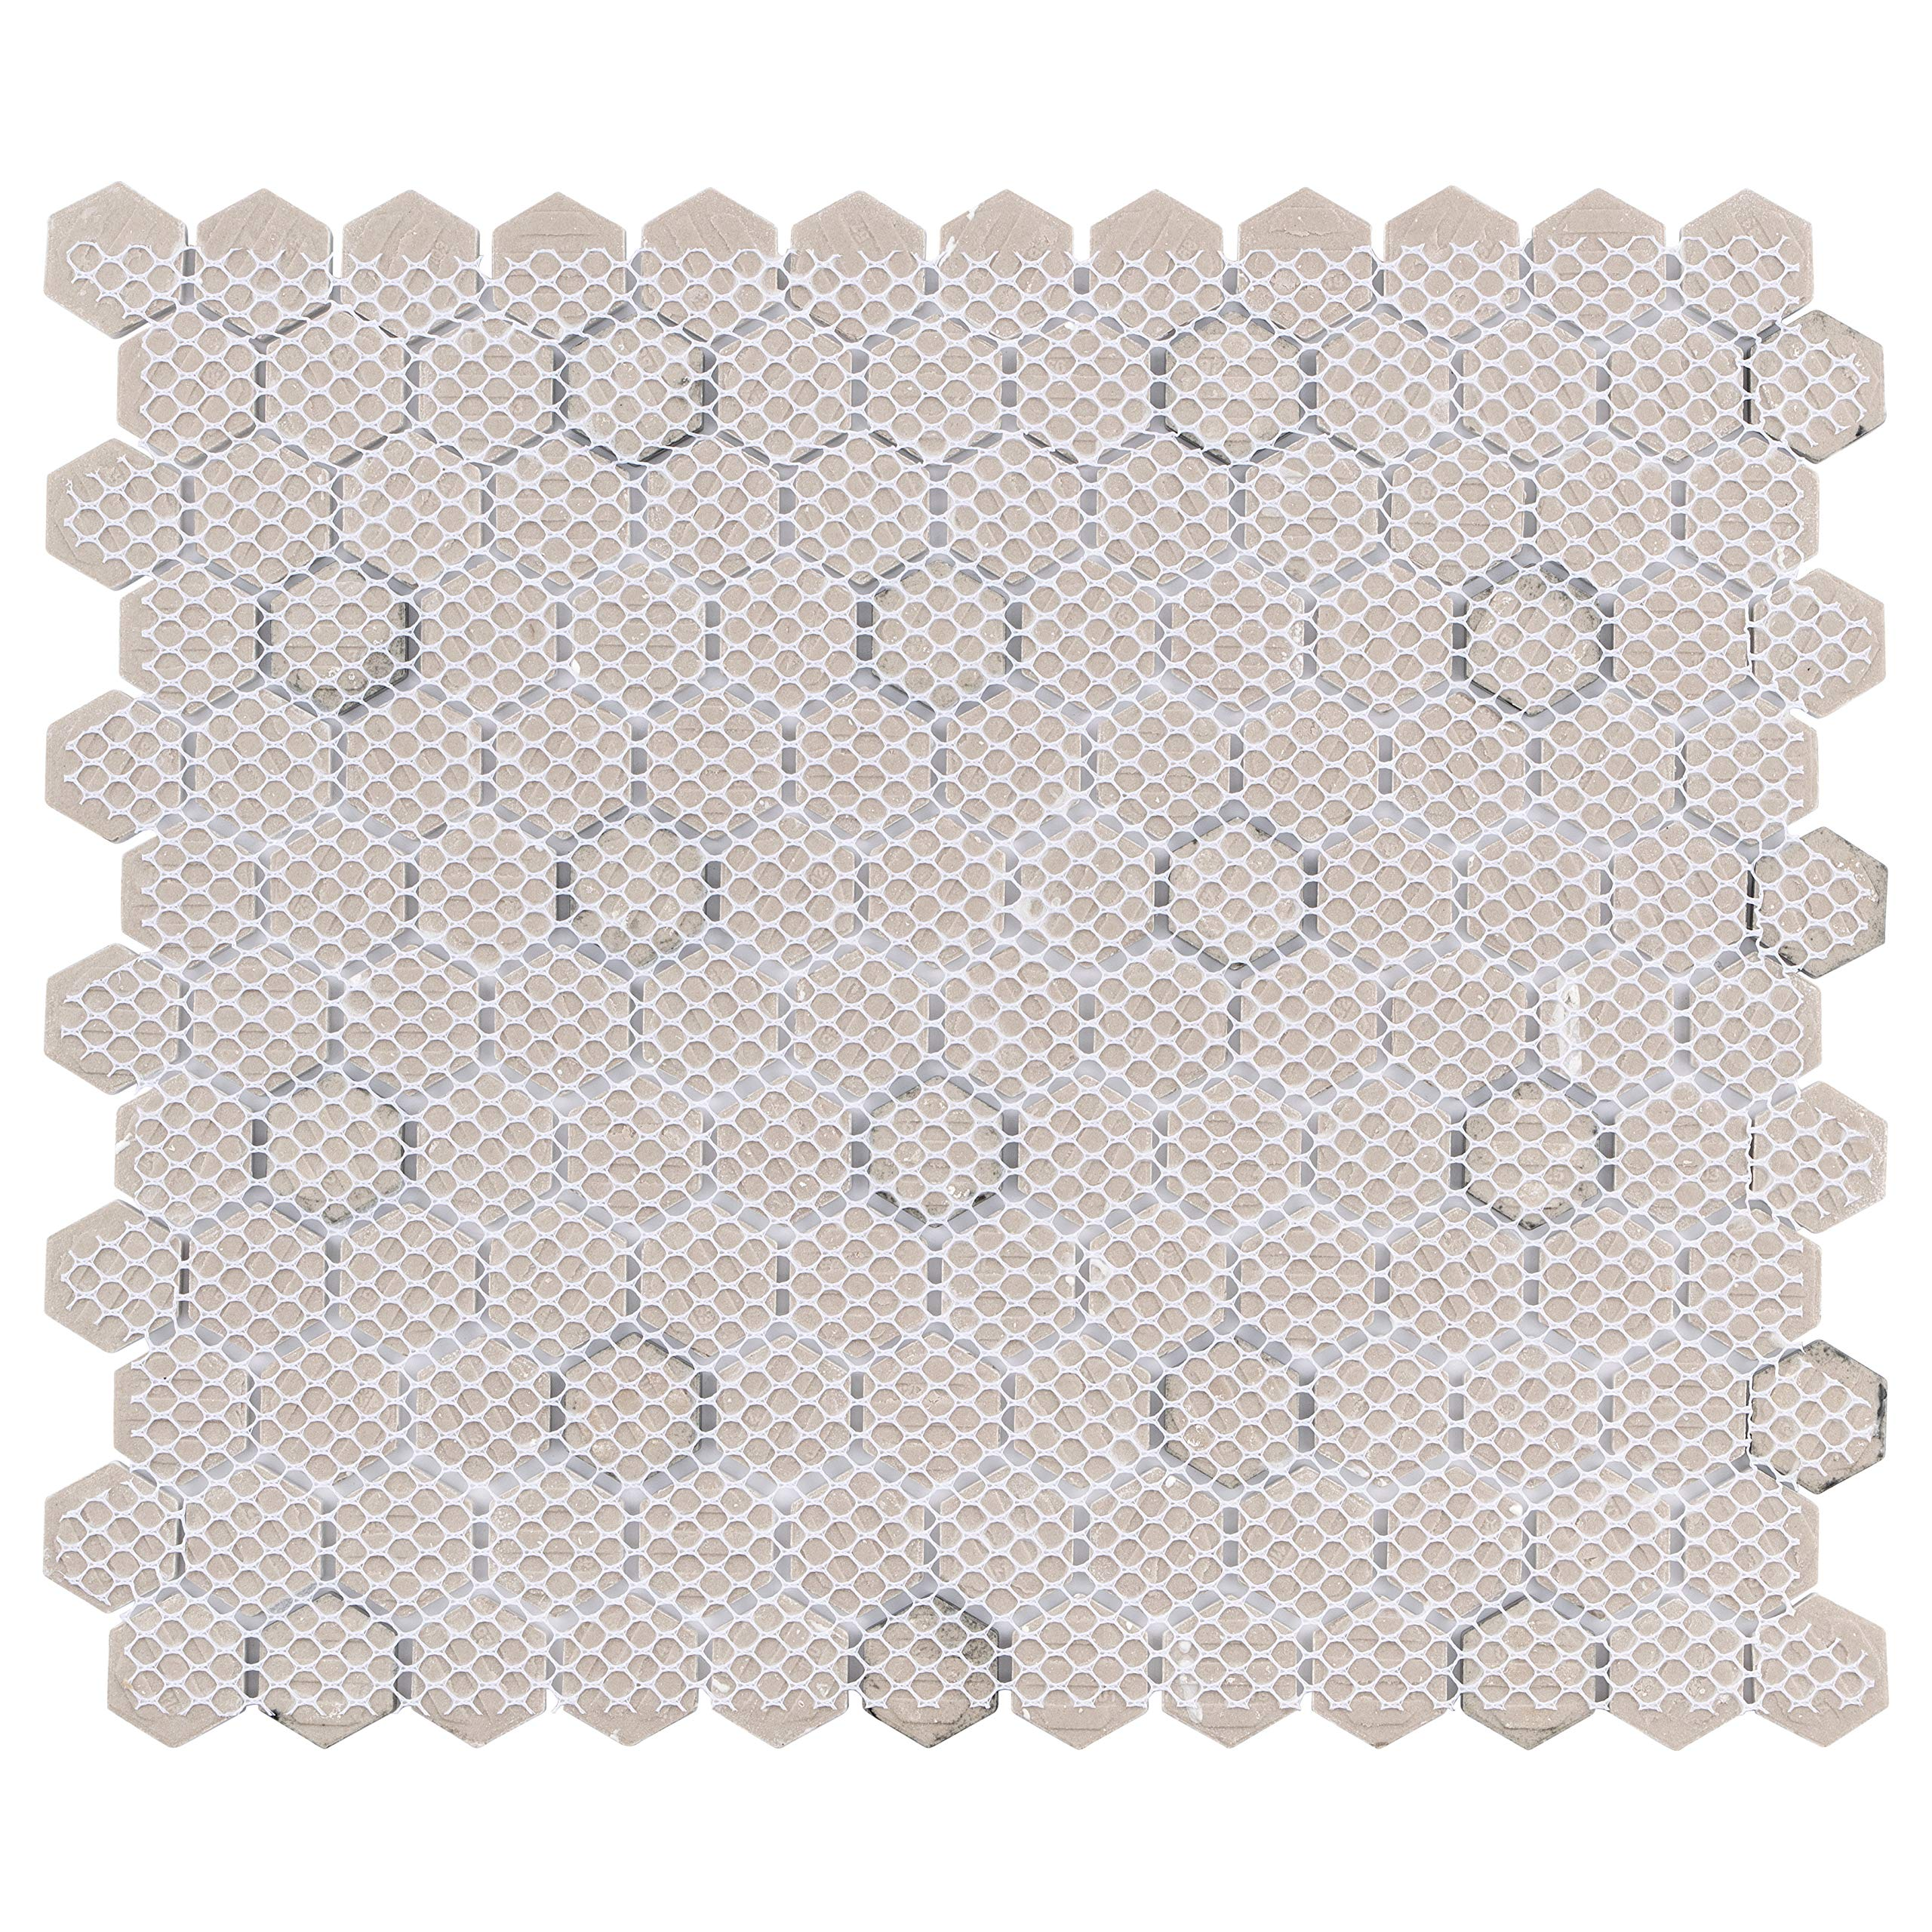 SomerTile FXLMHWBD Retro Hexagon Porcelain Mosaic Floor and Wall Tile, 10.25'' x 11.75'', White with Black Dot by SOMERTILE (Image #3)